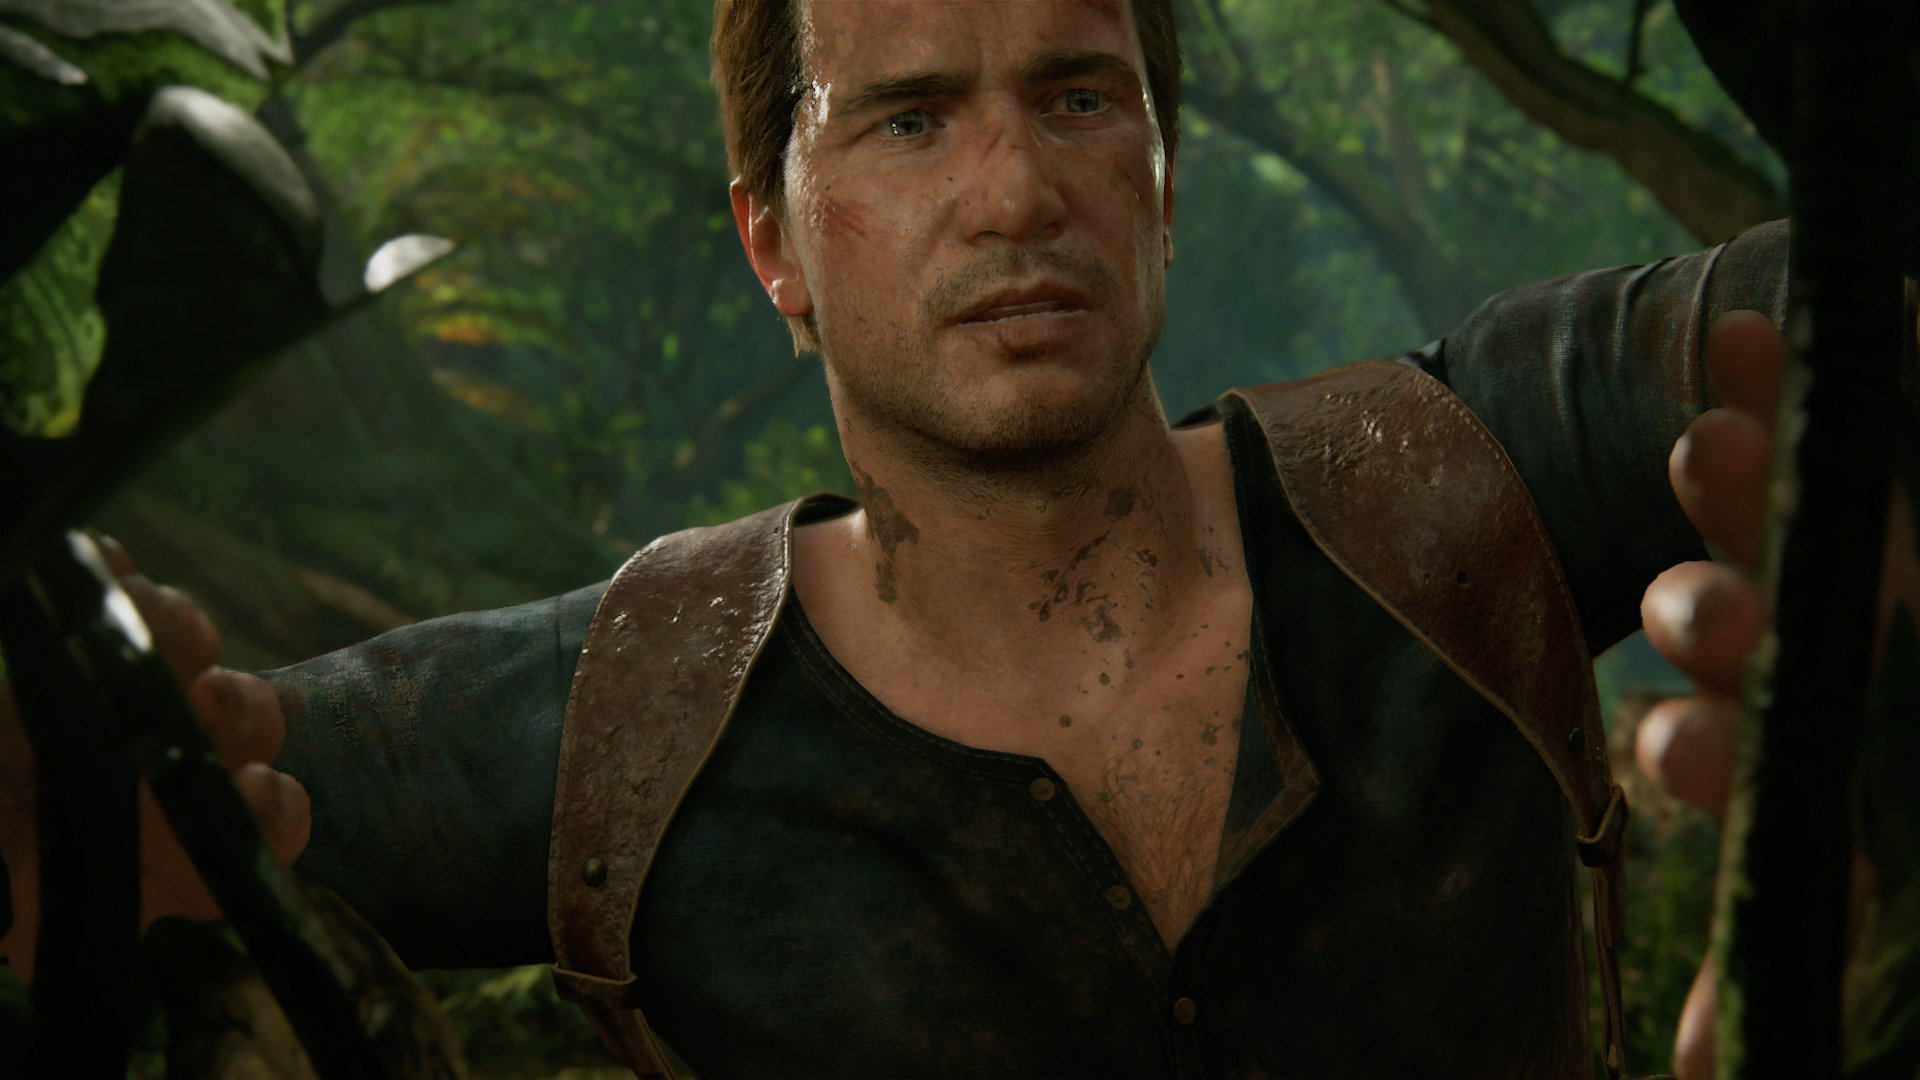 A close-up shot of Nathan Drake from Uncharted 4: A Thief's End